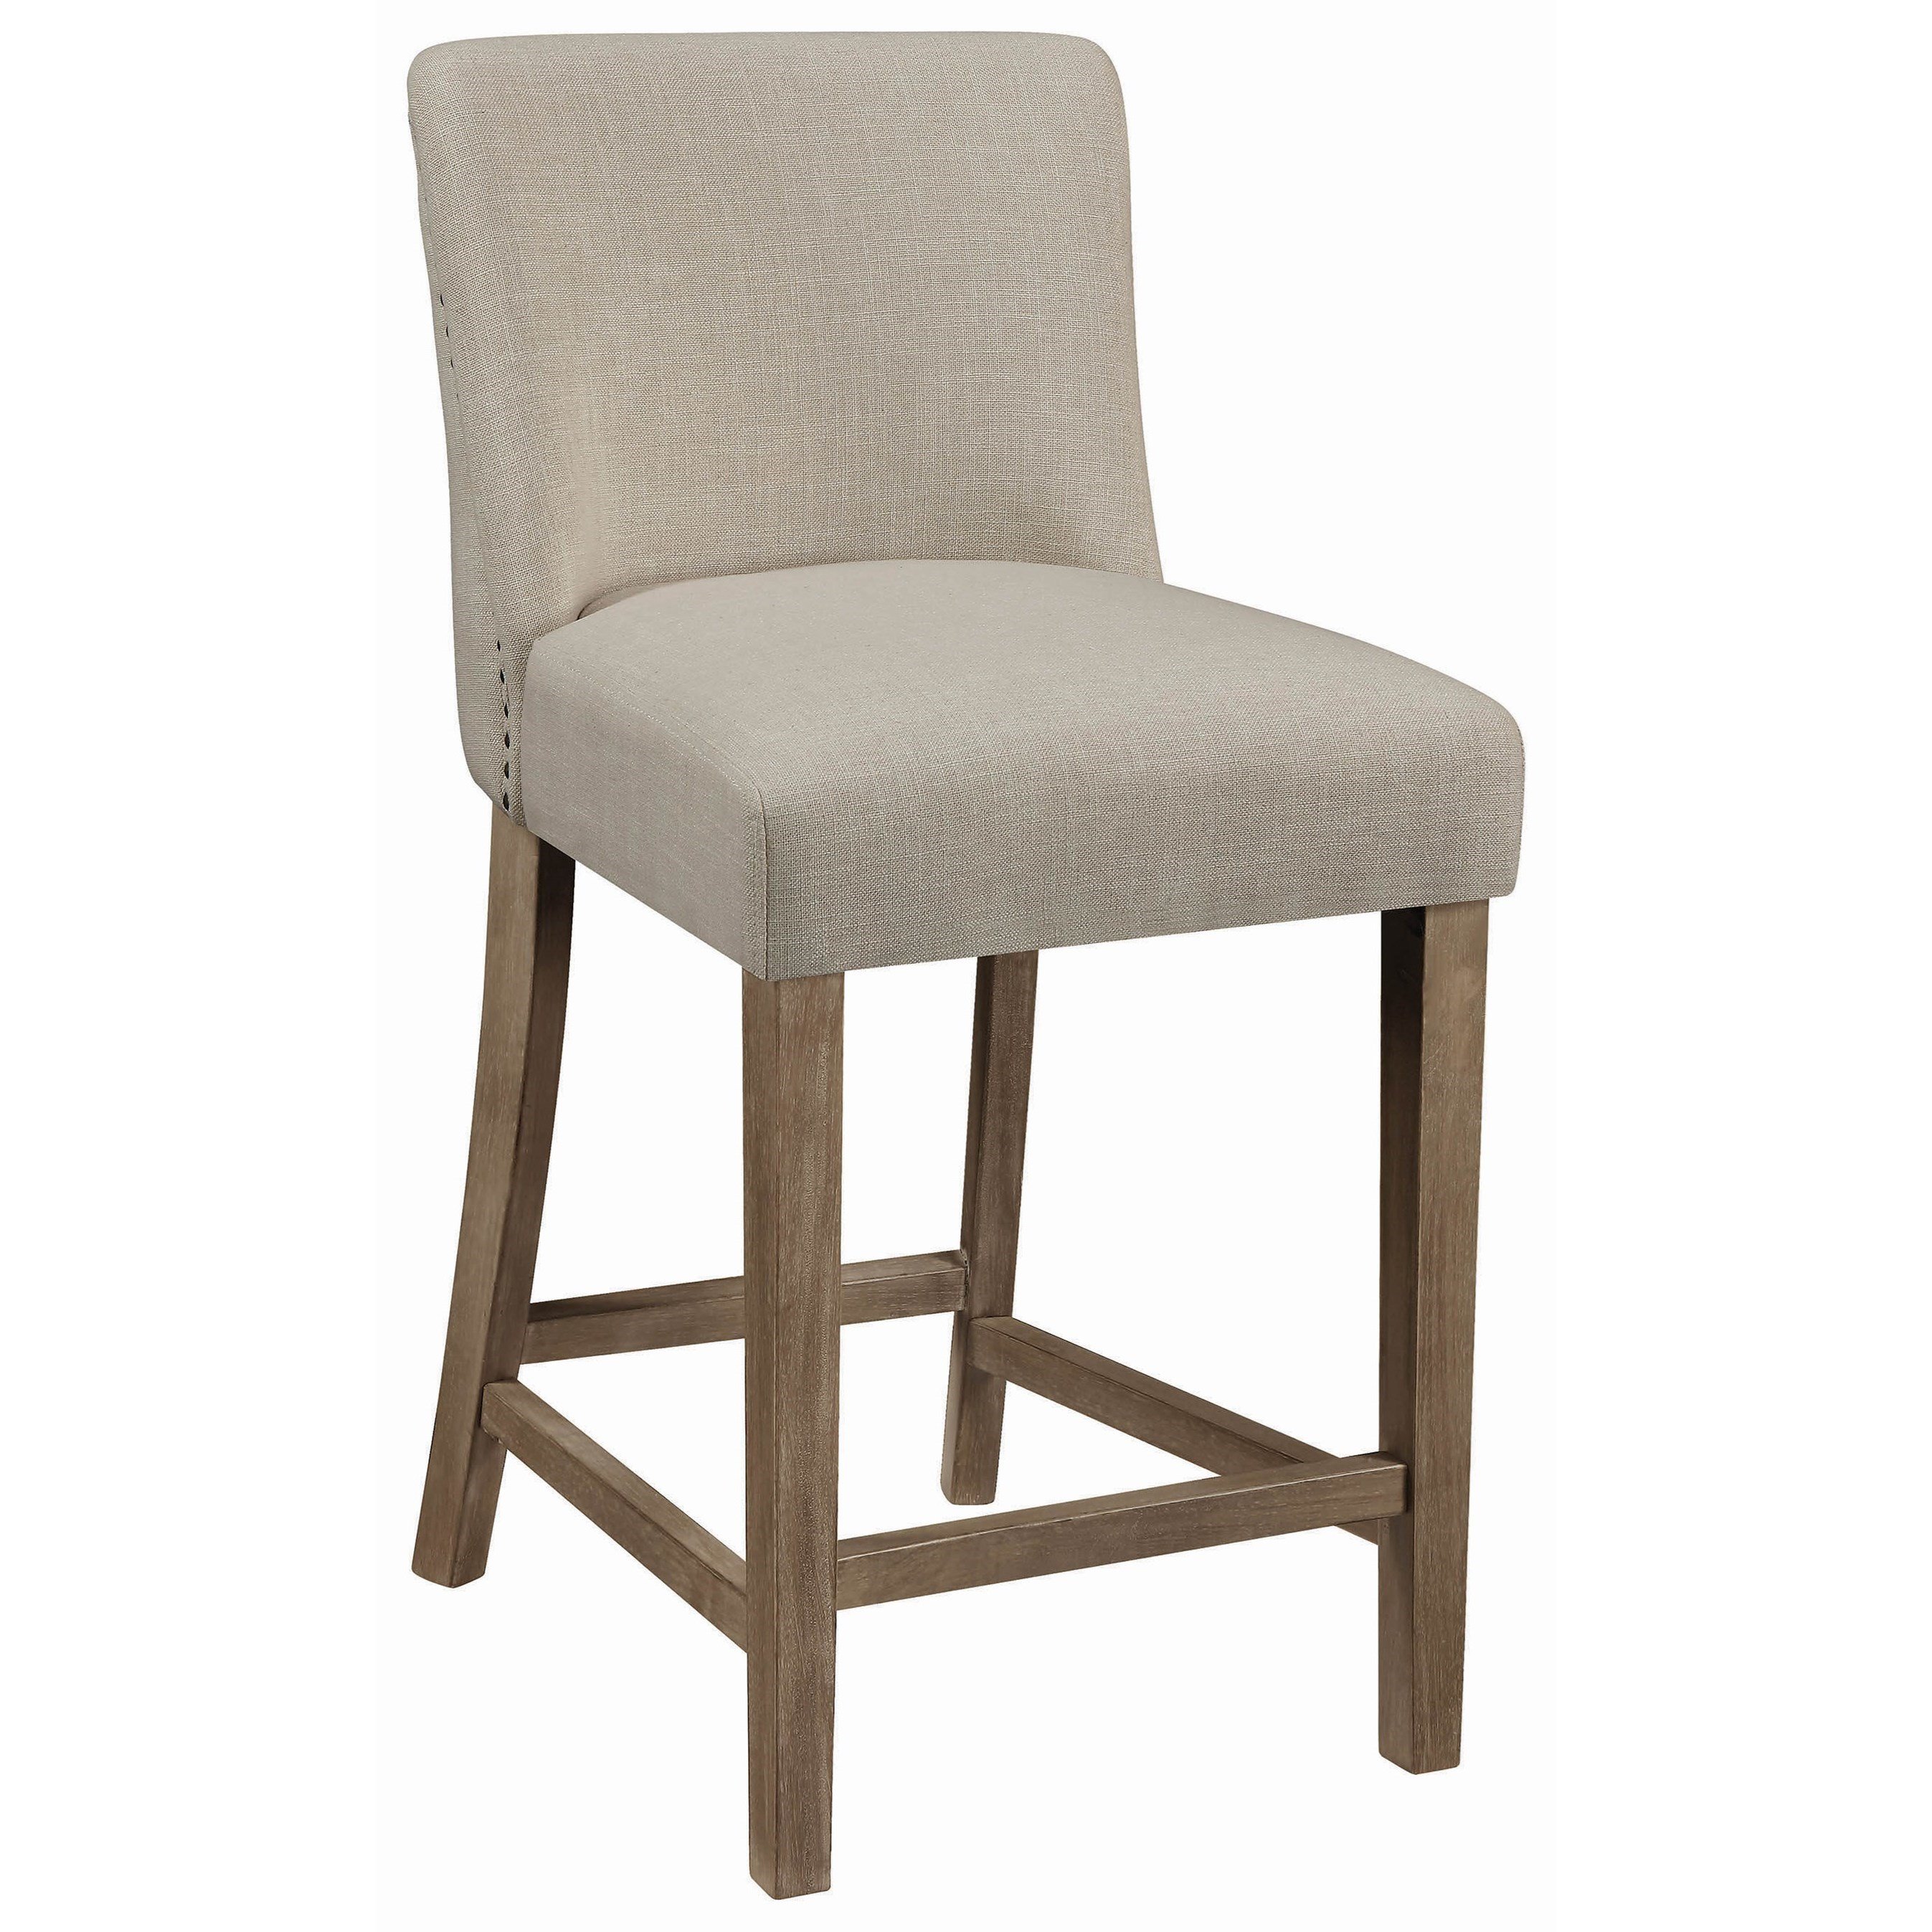 coaster dining chairs and bar stools vintage counter height stool with nailheads standard. Black Bedroom Furniture Sets. Home Design Ideas